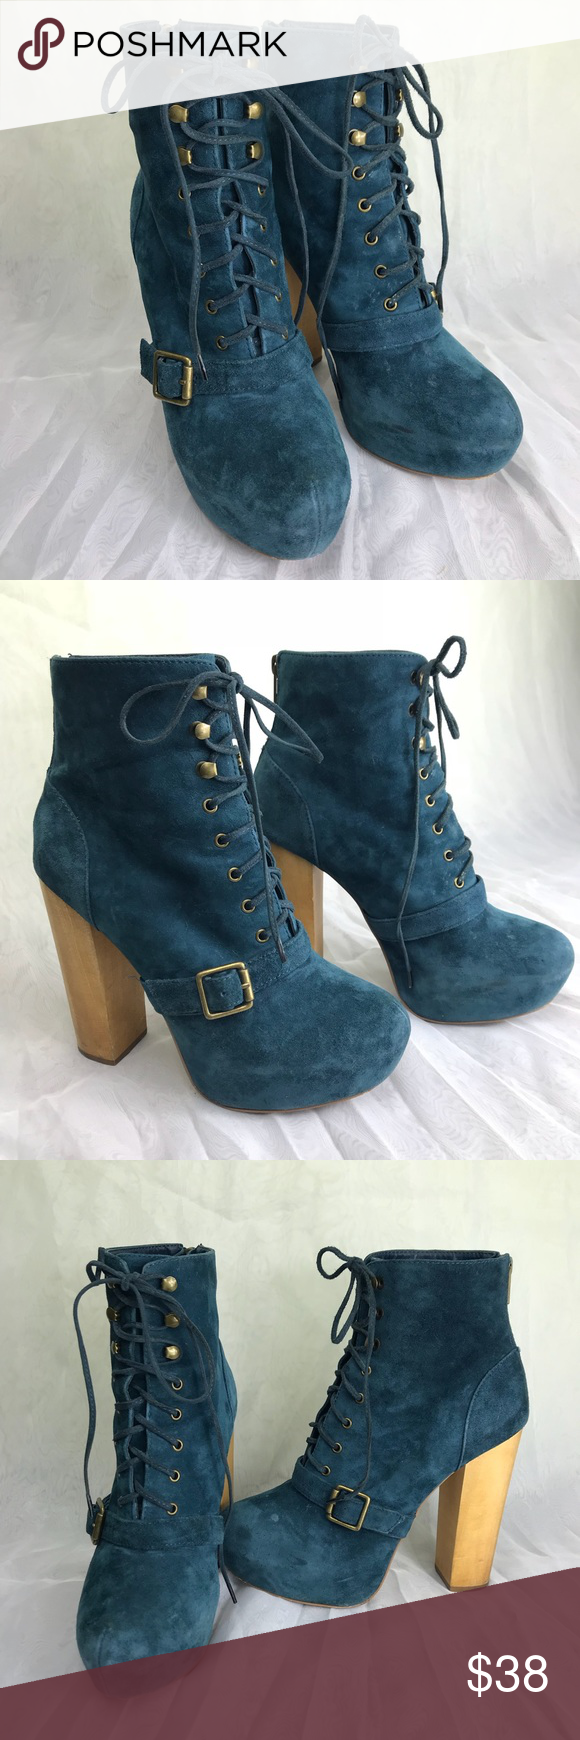 Steve Madden boot Carnaby blue suede